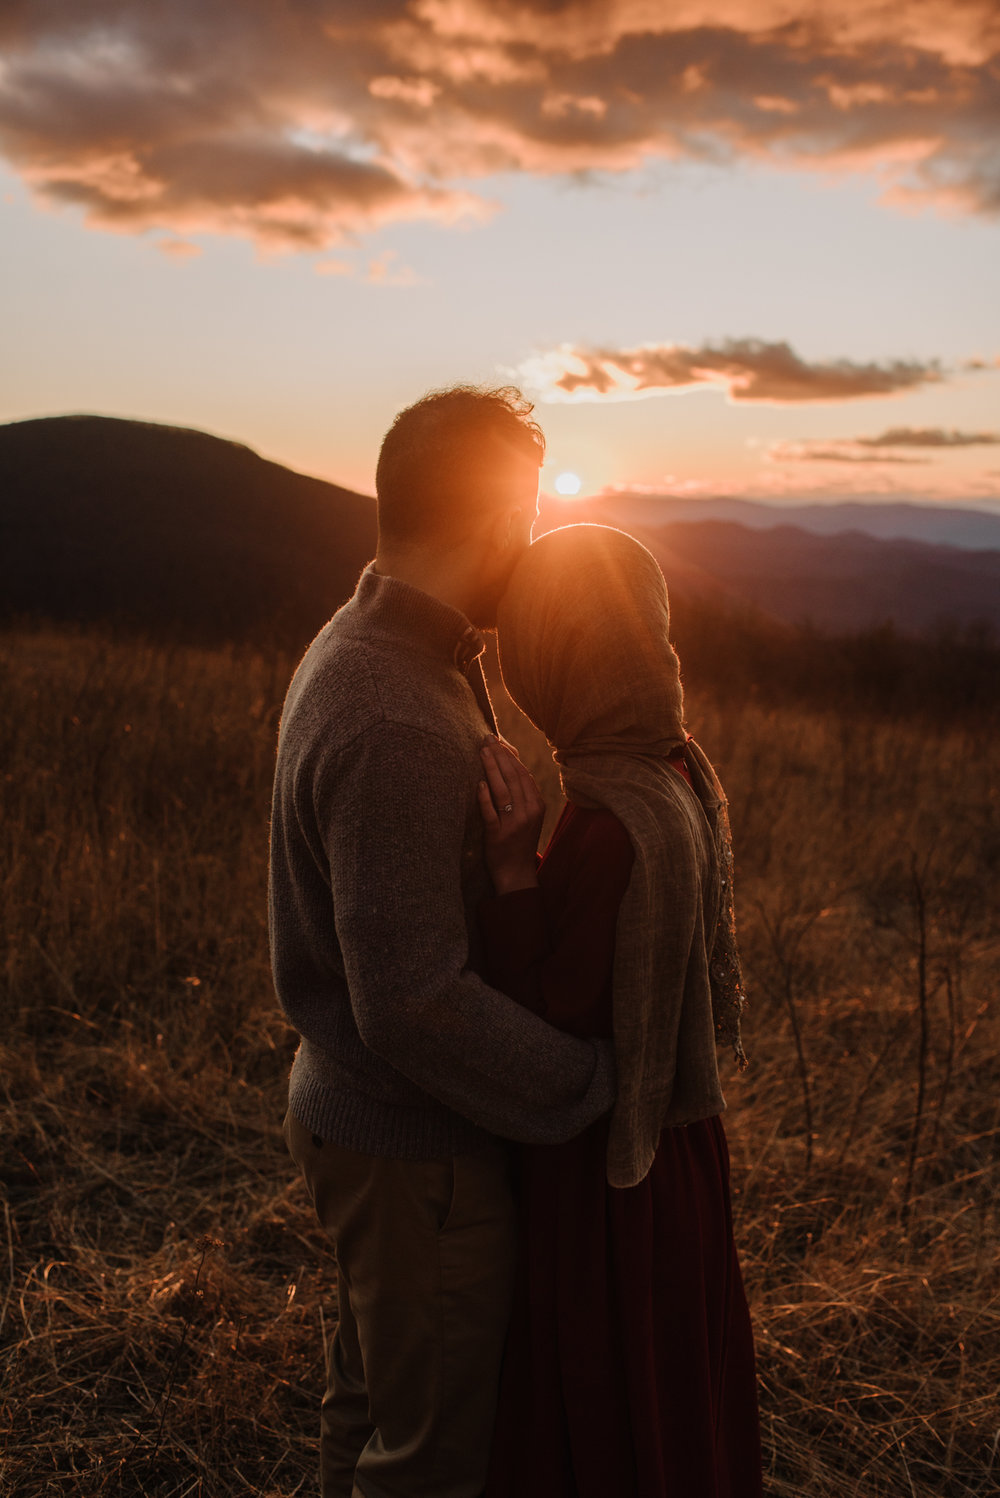 Safa and Ali - Shenandoah National Park Adventure Engagement Session - Blue Ridge Parkway - Skyline Drive - Blue Ridge Mountains - Virginia Elopement Photographer_36.JPG